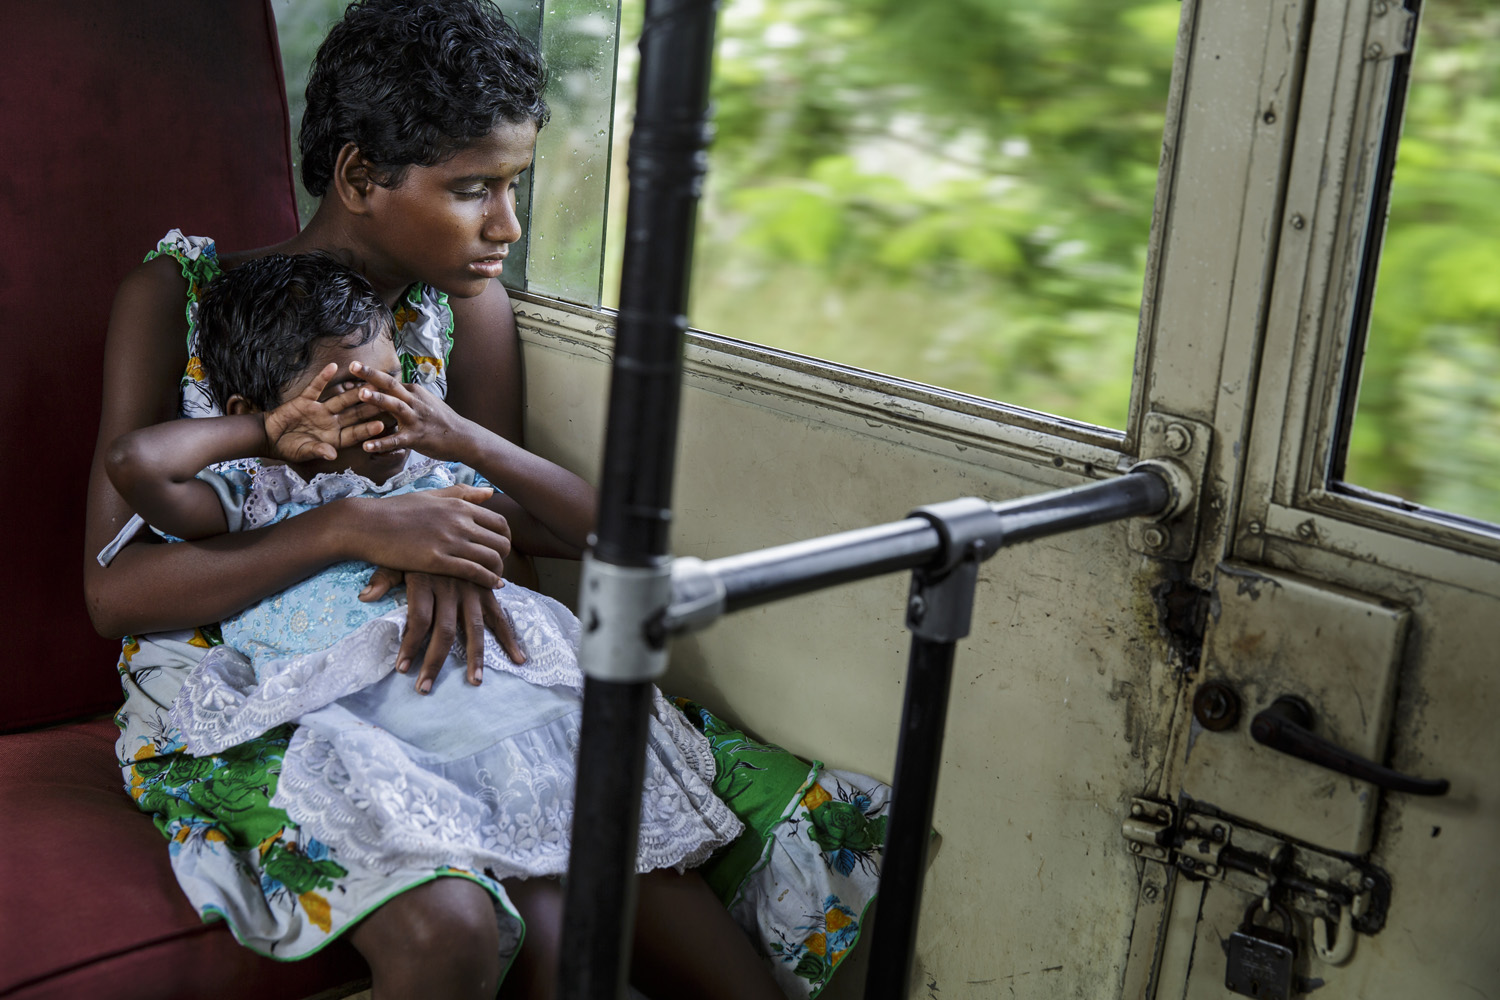 Sonia and Anita Singh are seen on a bus on their way to donor sponsored cataract surgery, Oct. 21, 2013 in West Bengal, India.